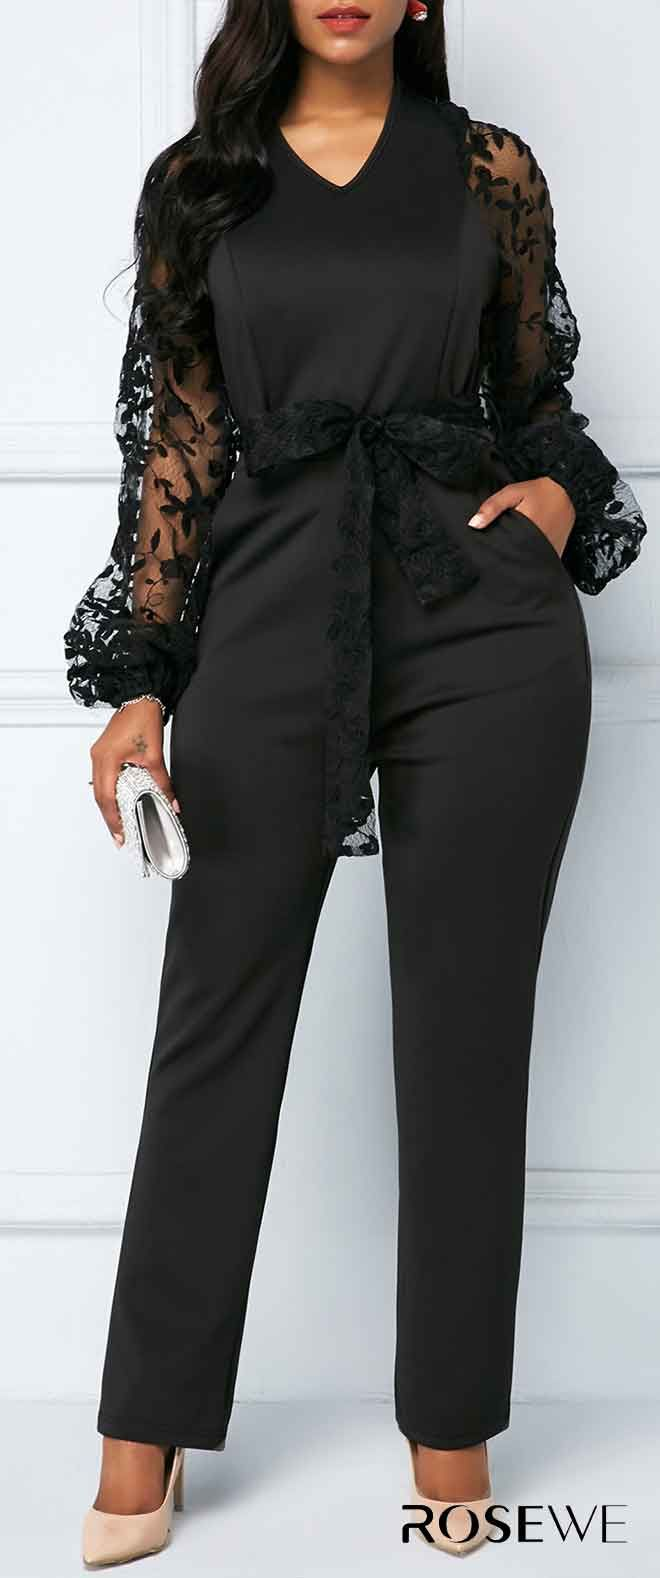 9993f4d7ea87 Gauze Panel V Neck Black Belted Jumpsuit. Free shipping worldwide! 30 days  unsatisfactory can easily return